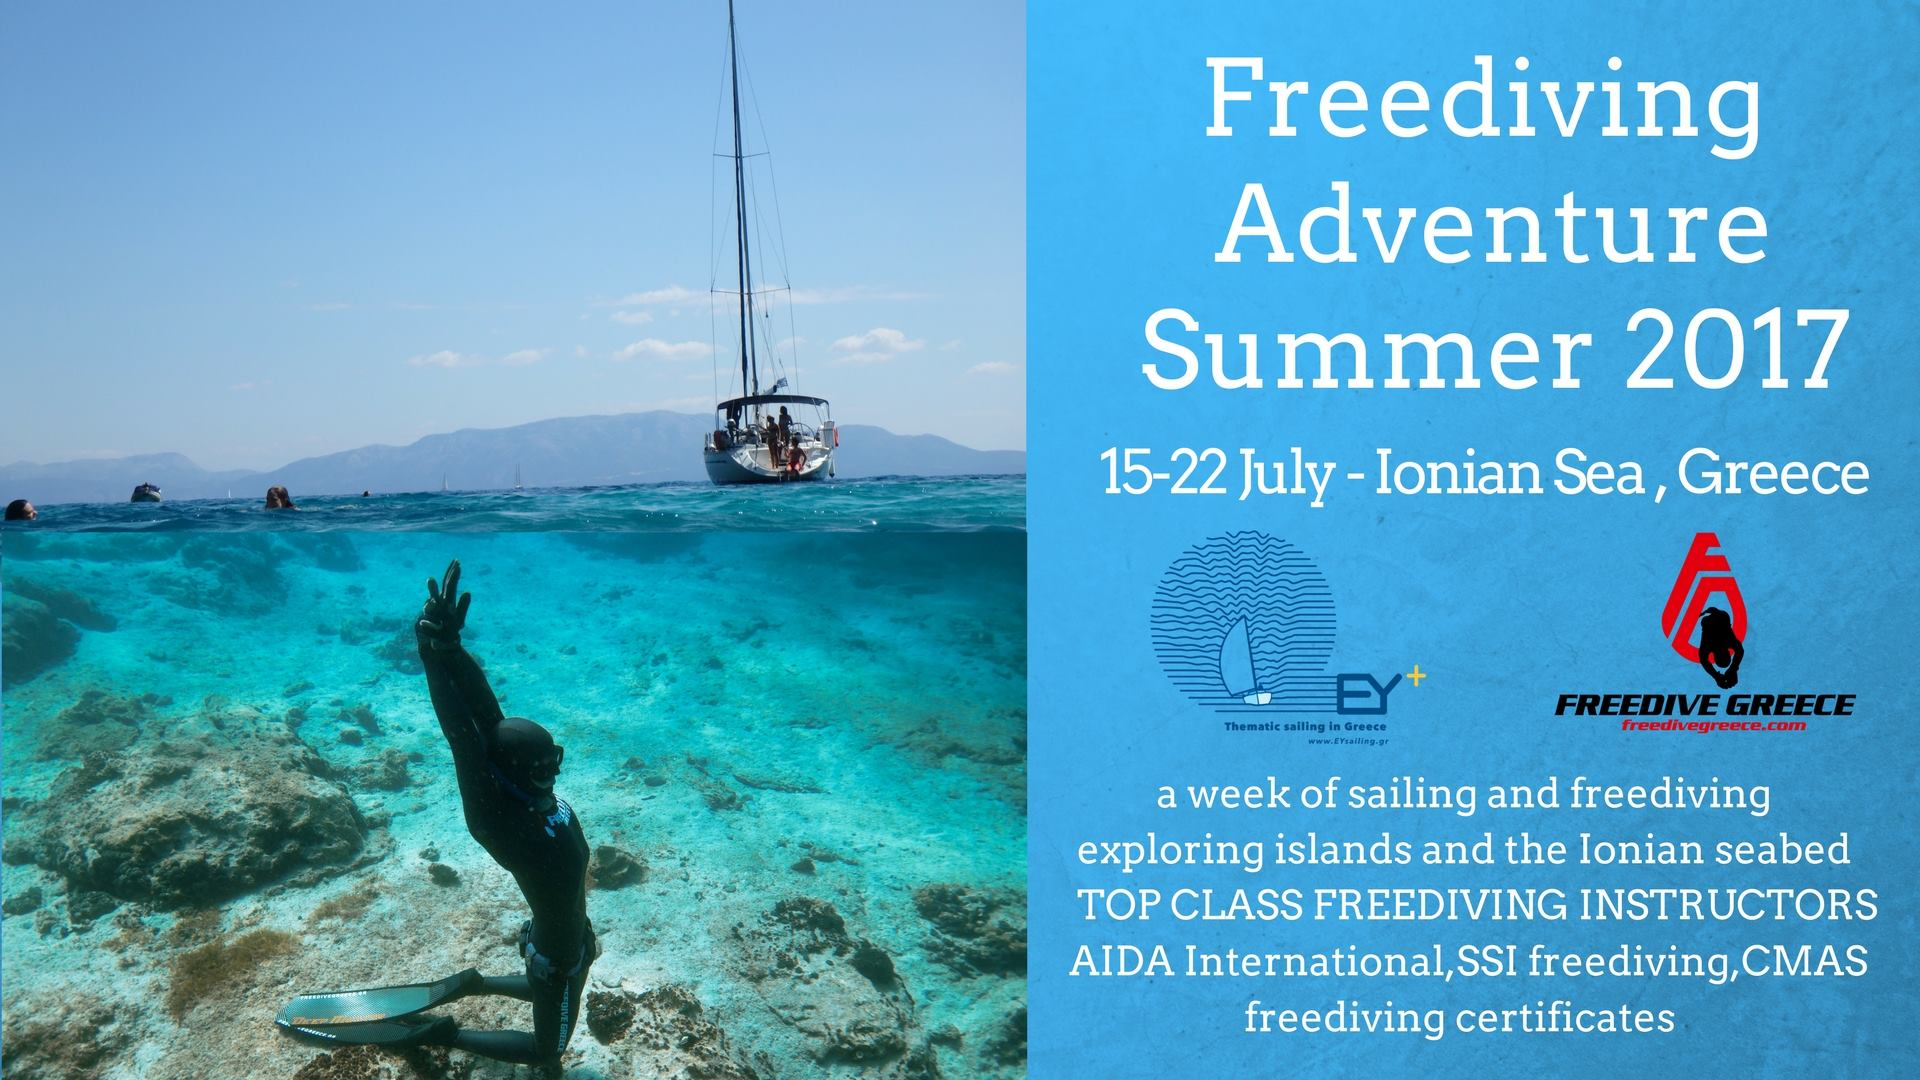 Combine Sailing With Freediving via EYSailing and Freedive Greece